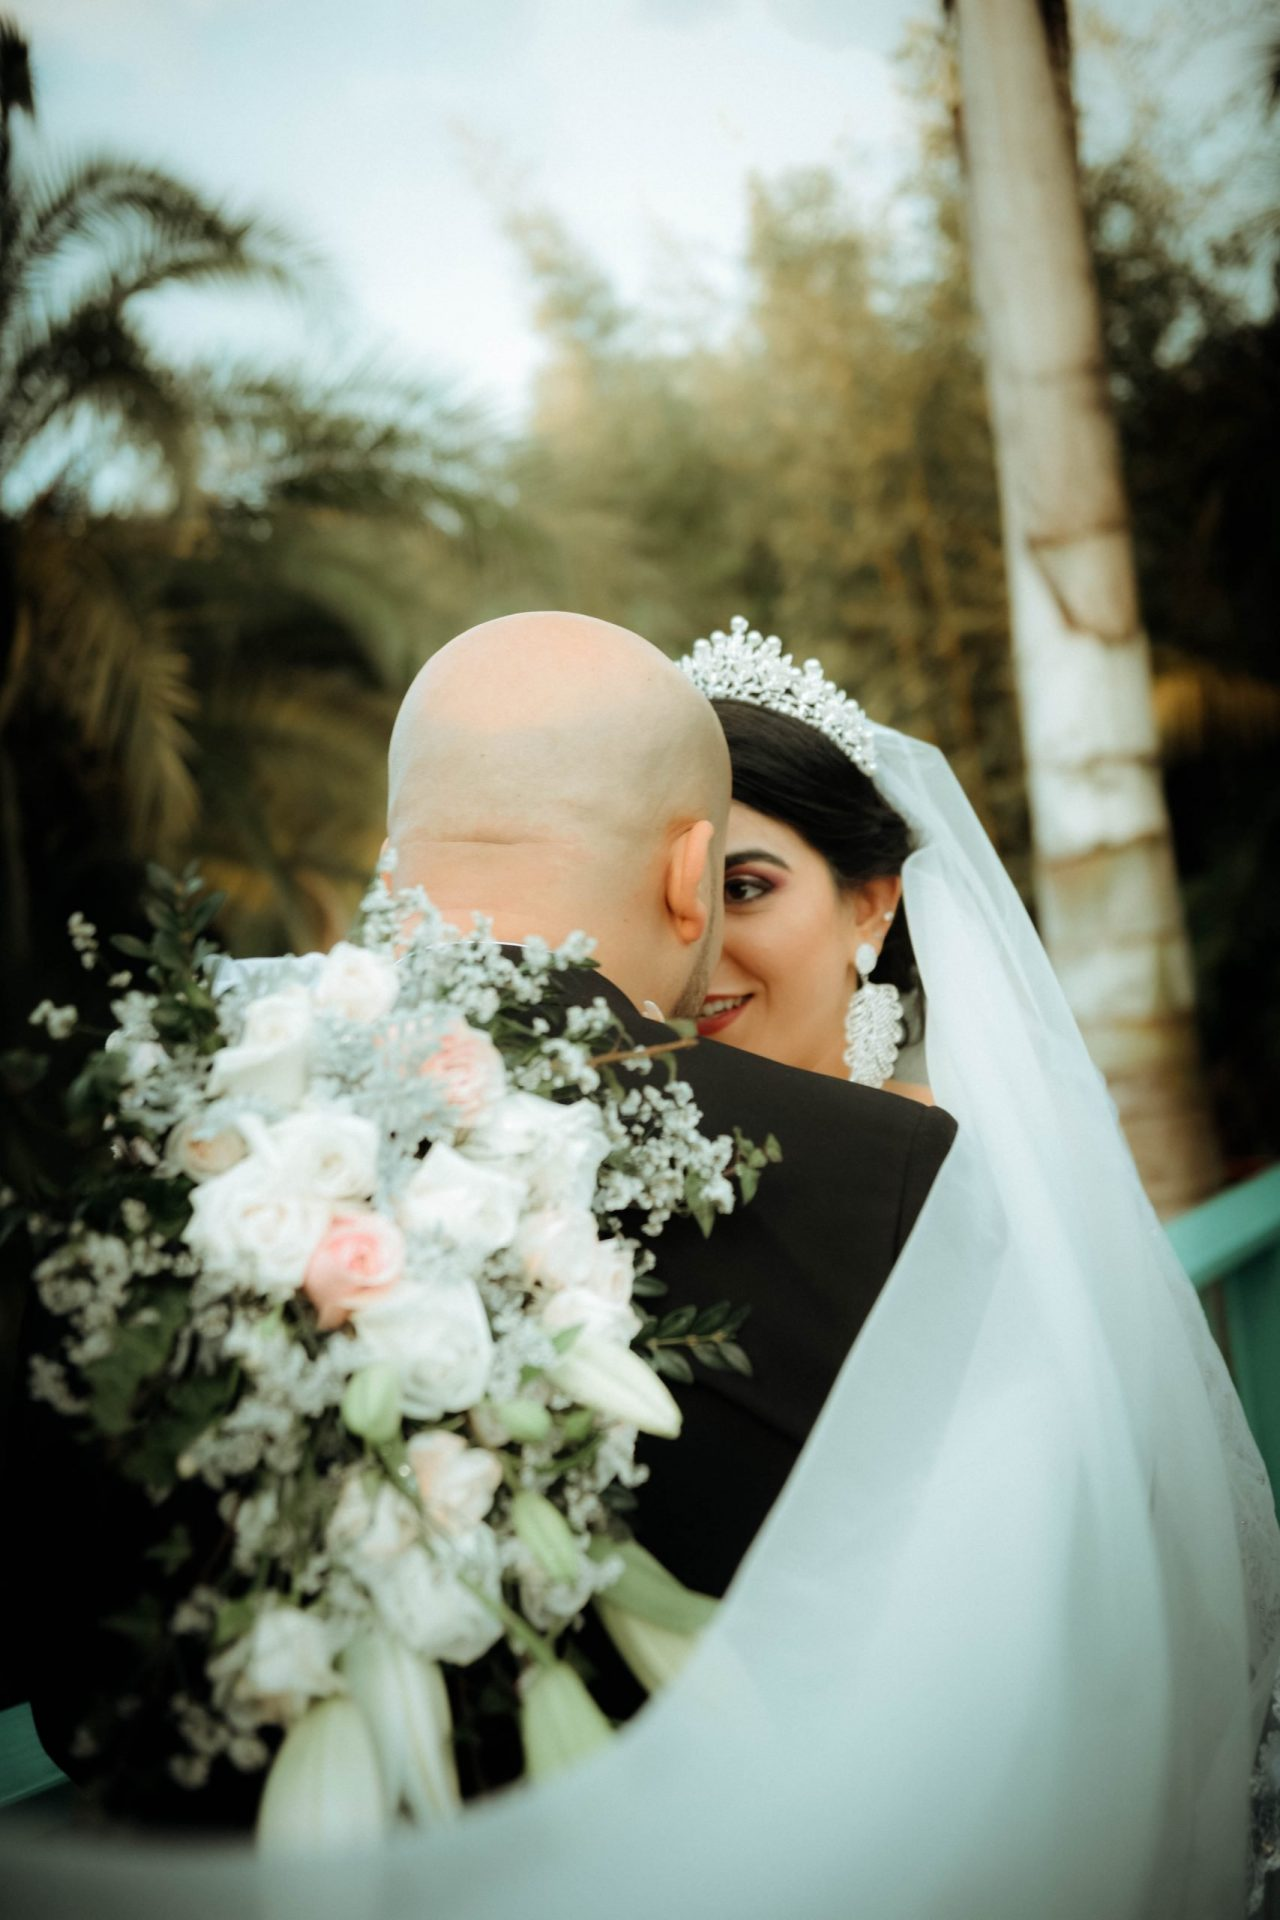 couple is standing and behind groom's back there are flowers, Wedding Photography of Sarah and Taher